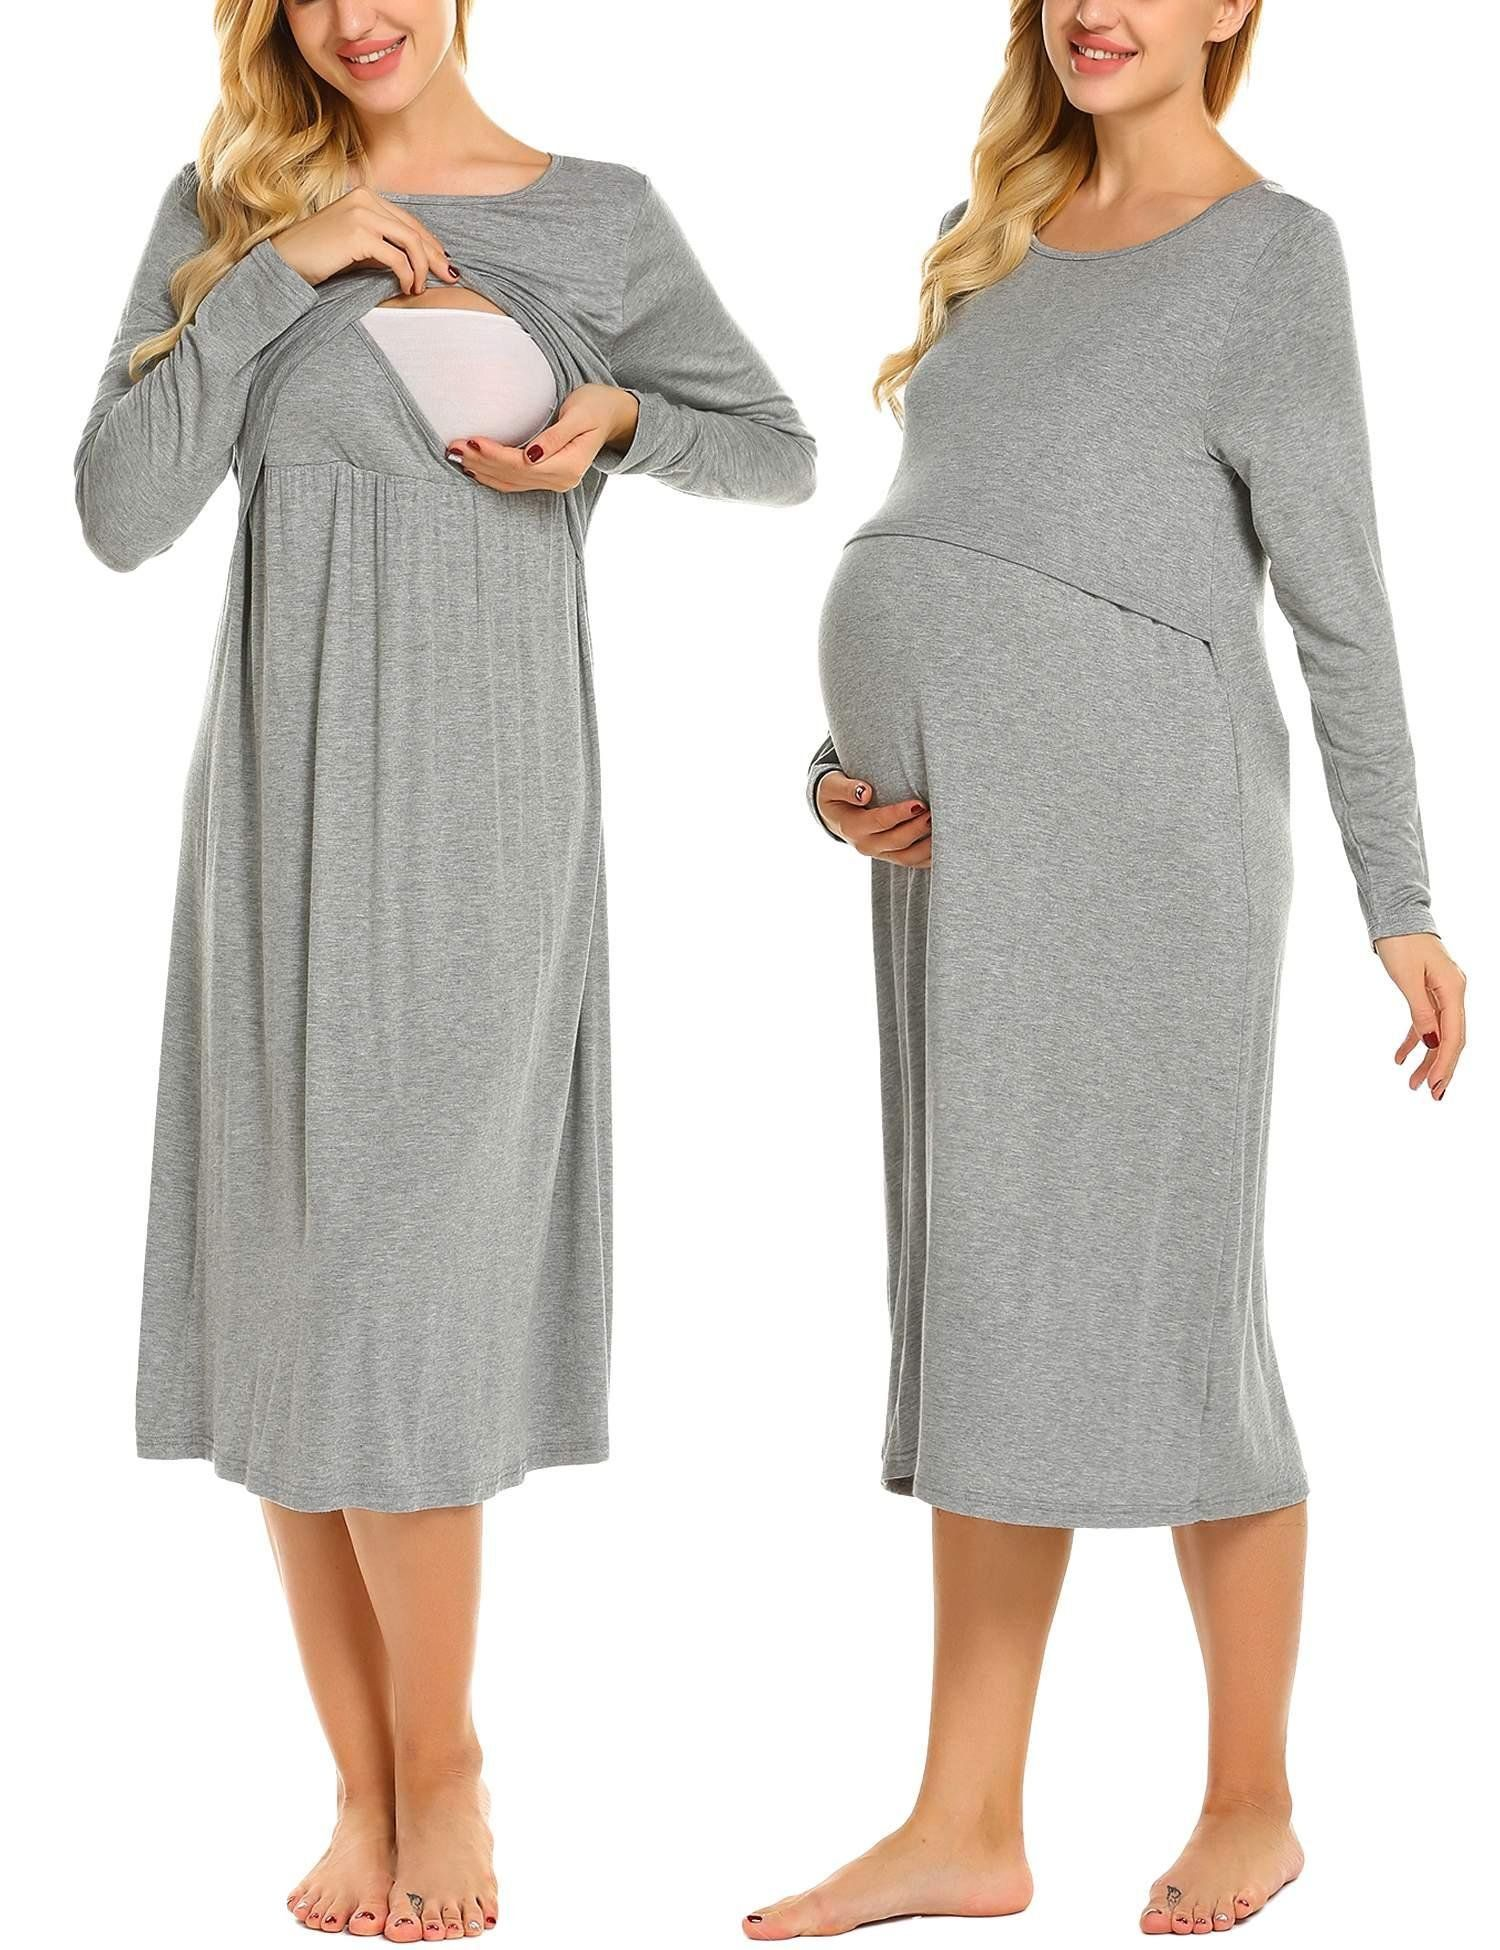 ab873bbdb2 Maternity Outfits - cool maternity dresses   Ekouaer Womens Layered Maternity  Dress Empire Waist Nursing Breastfeeding Dress     Much more info might be  ...